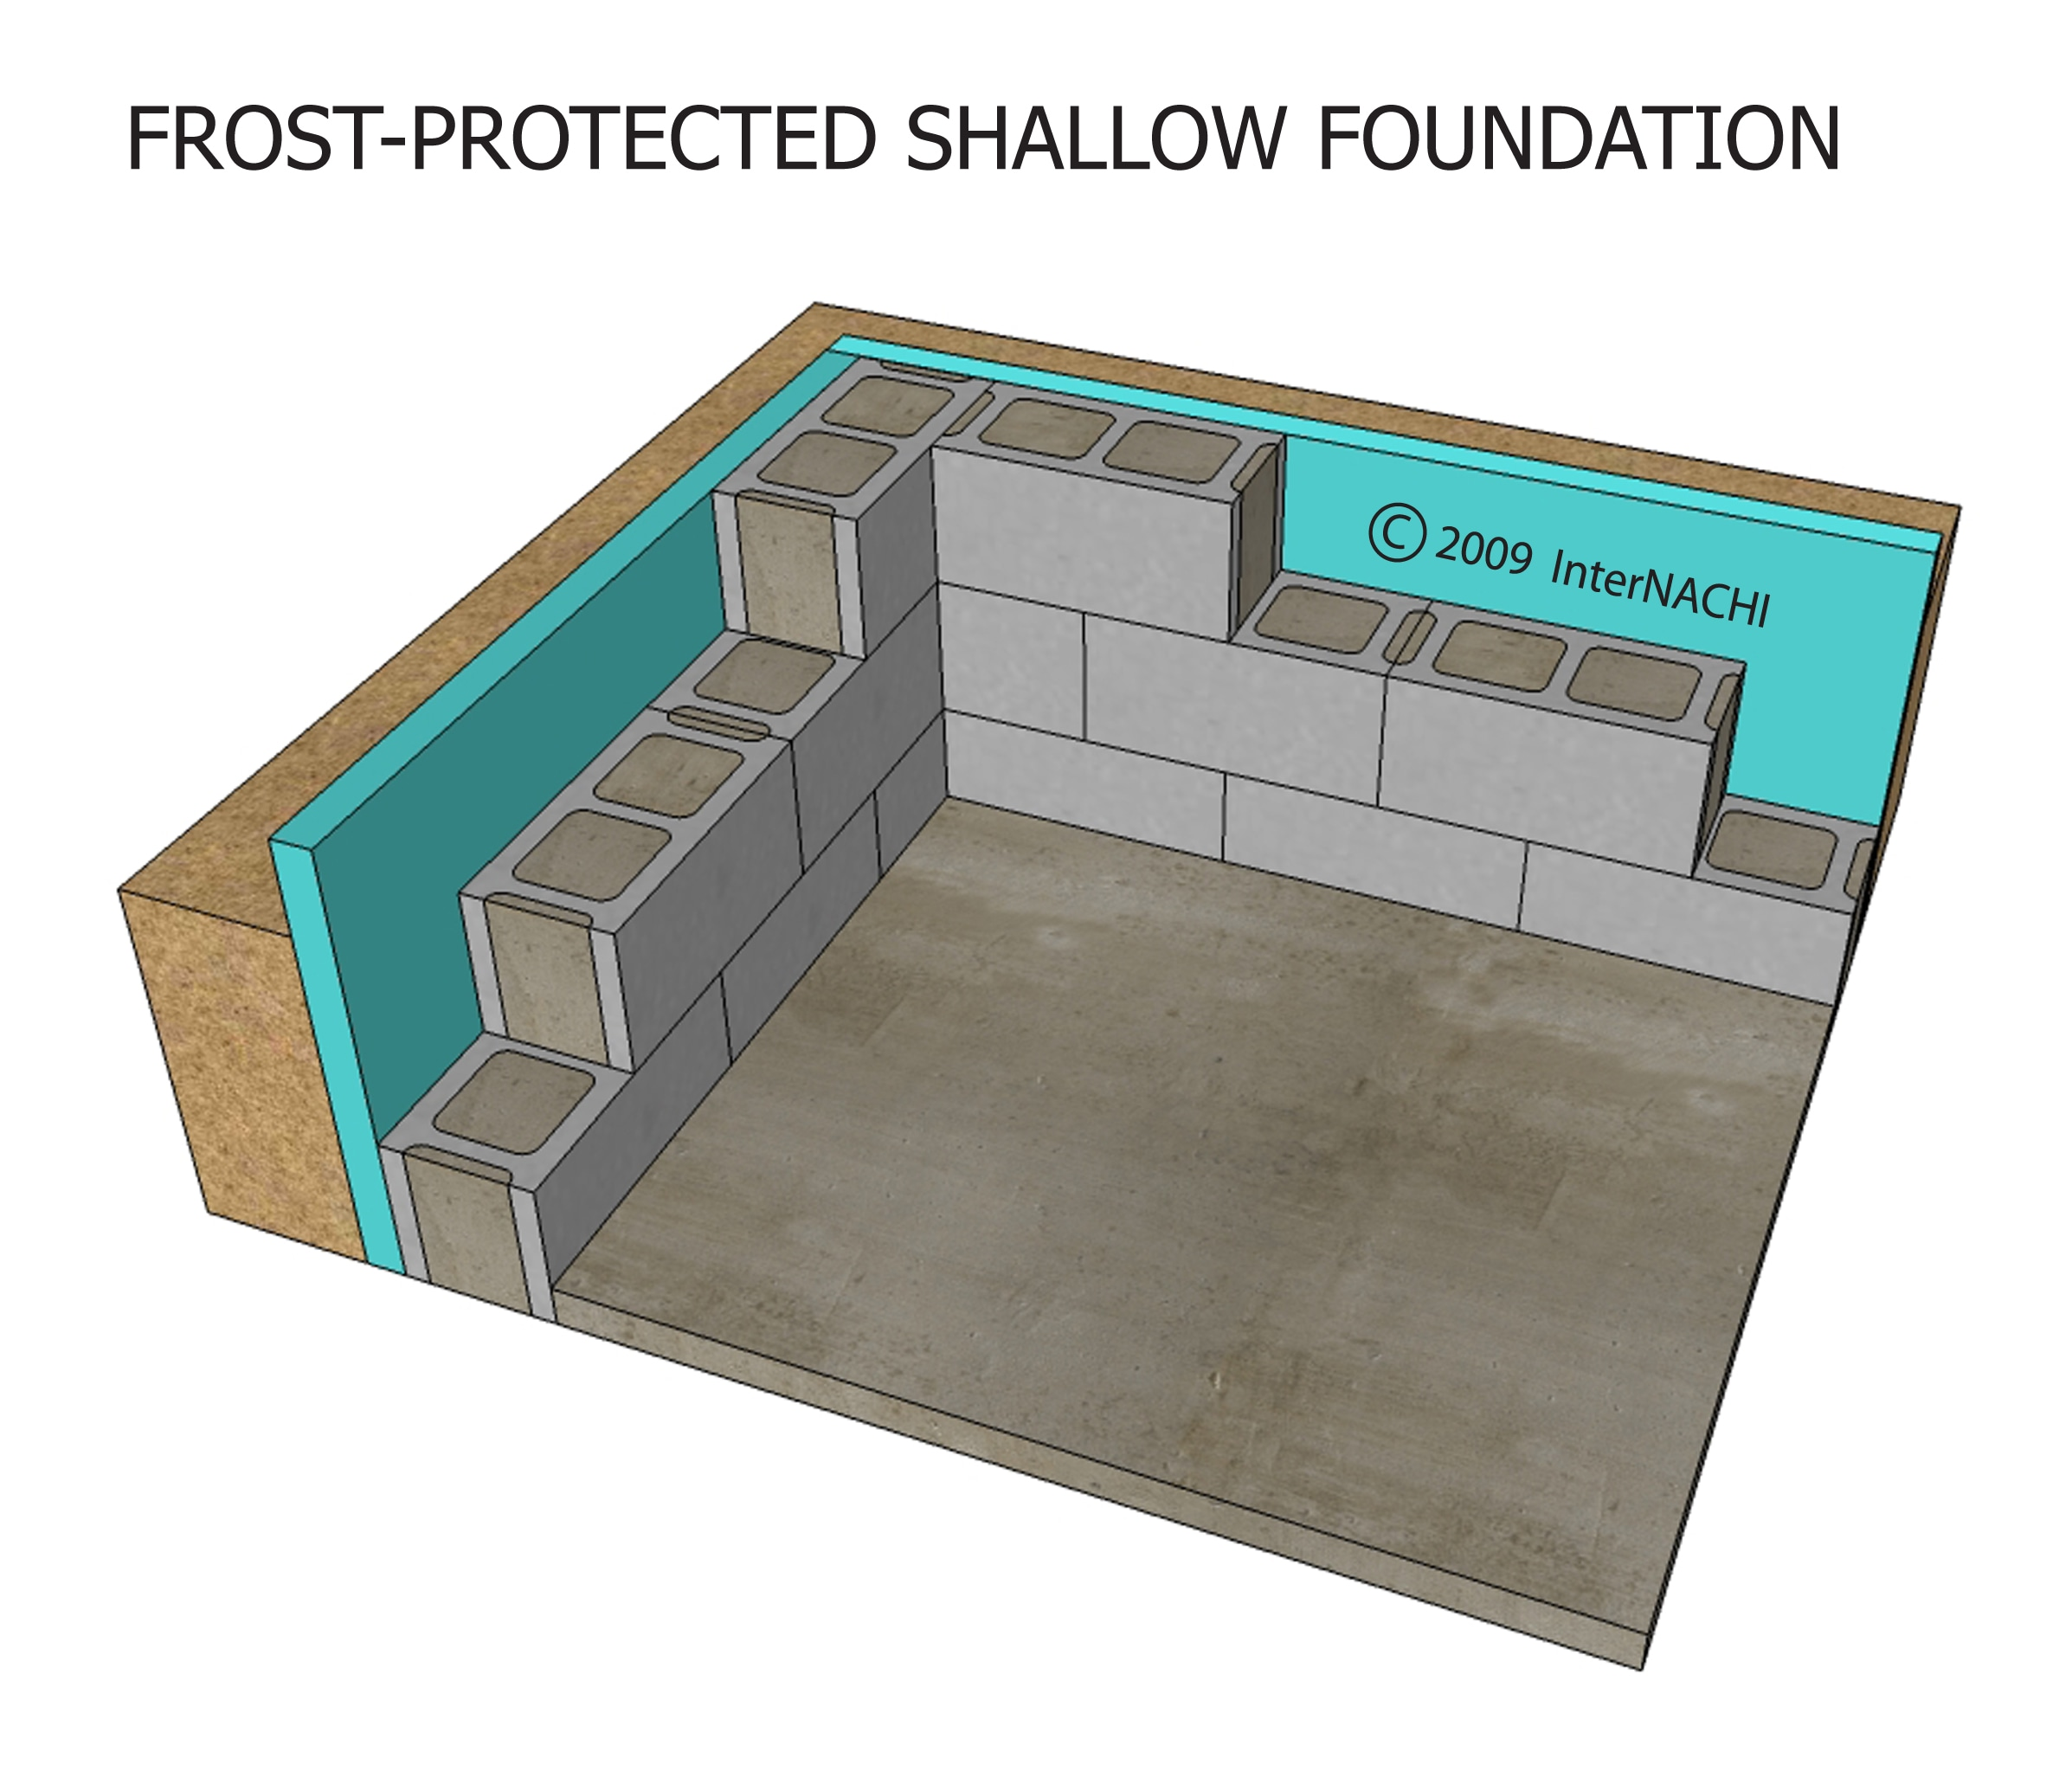 Frost-protected shallow foundation.